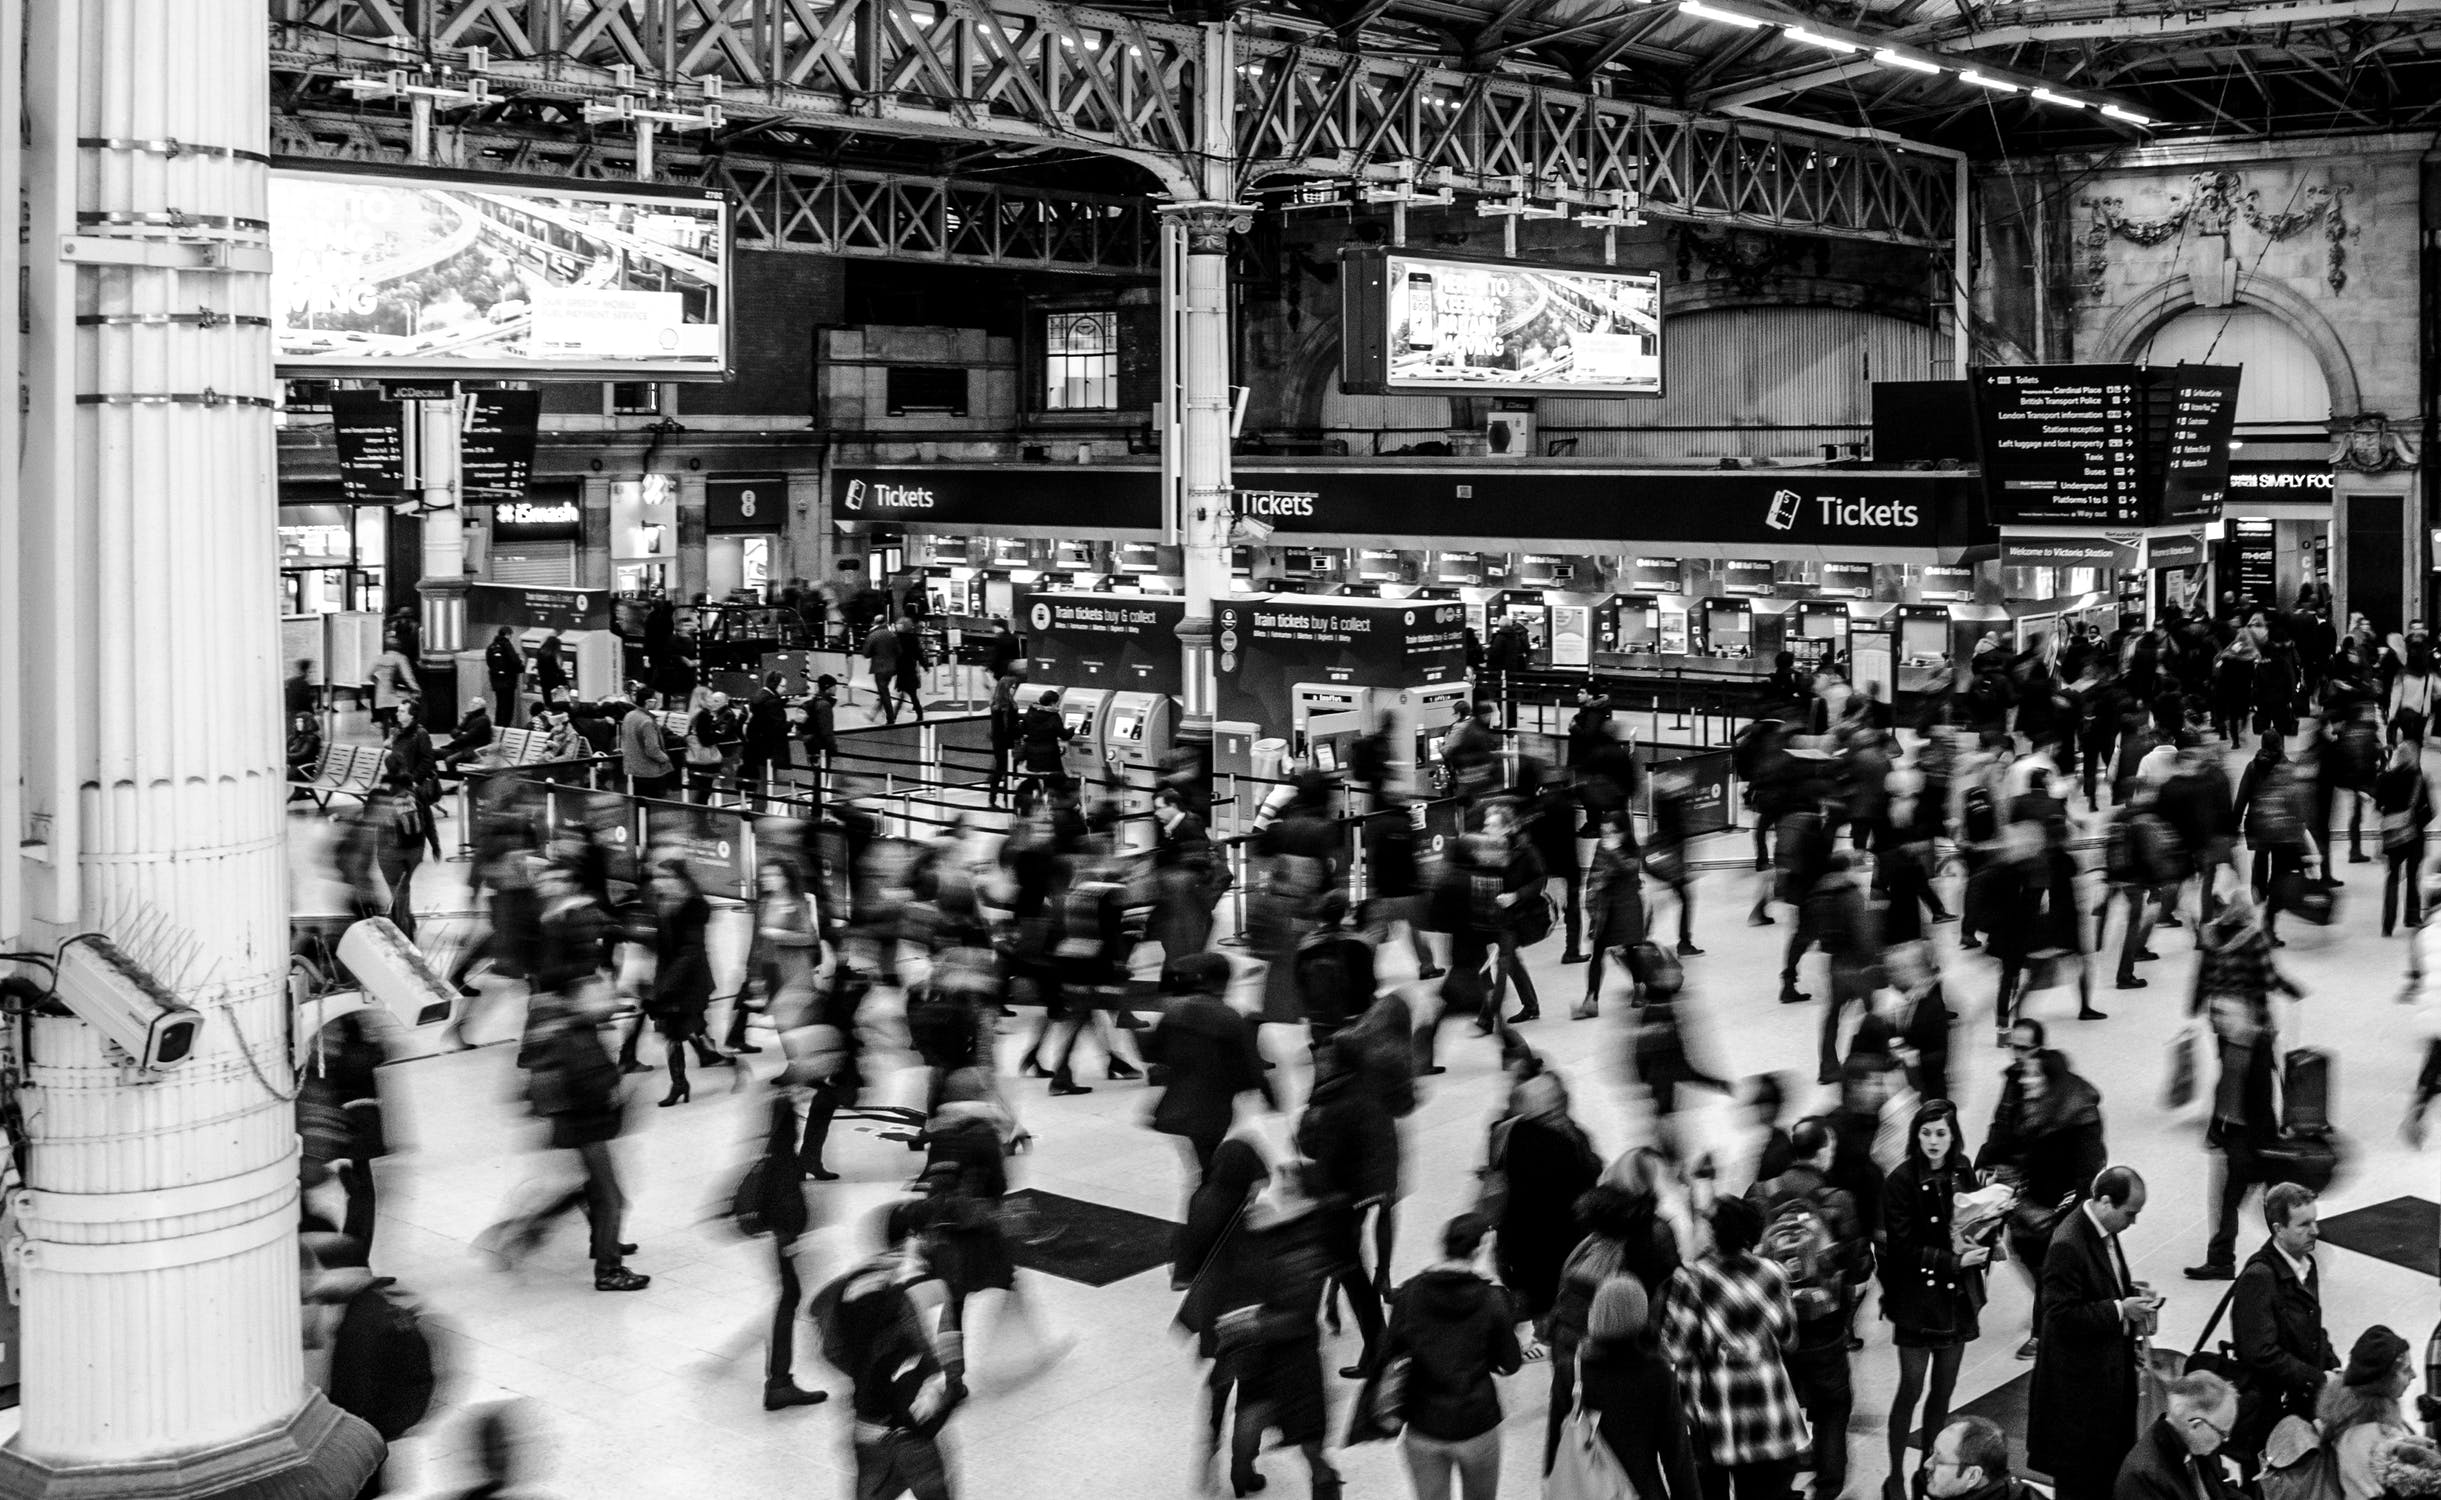 victoria-station-busy-people-victoria-735795.jpeg